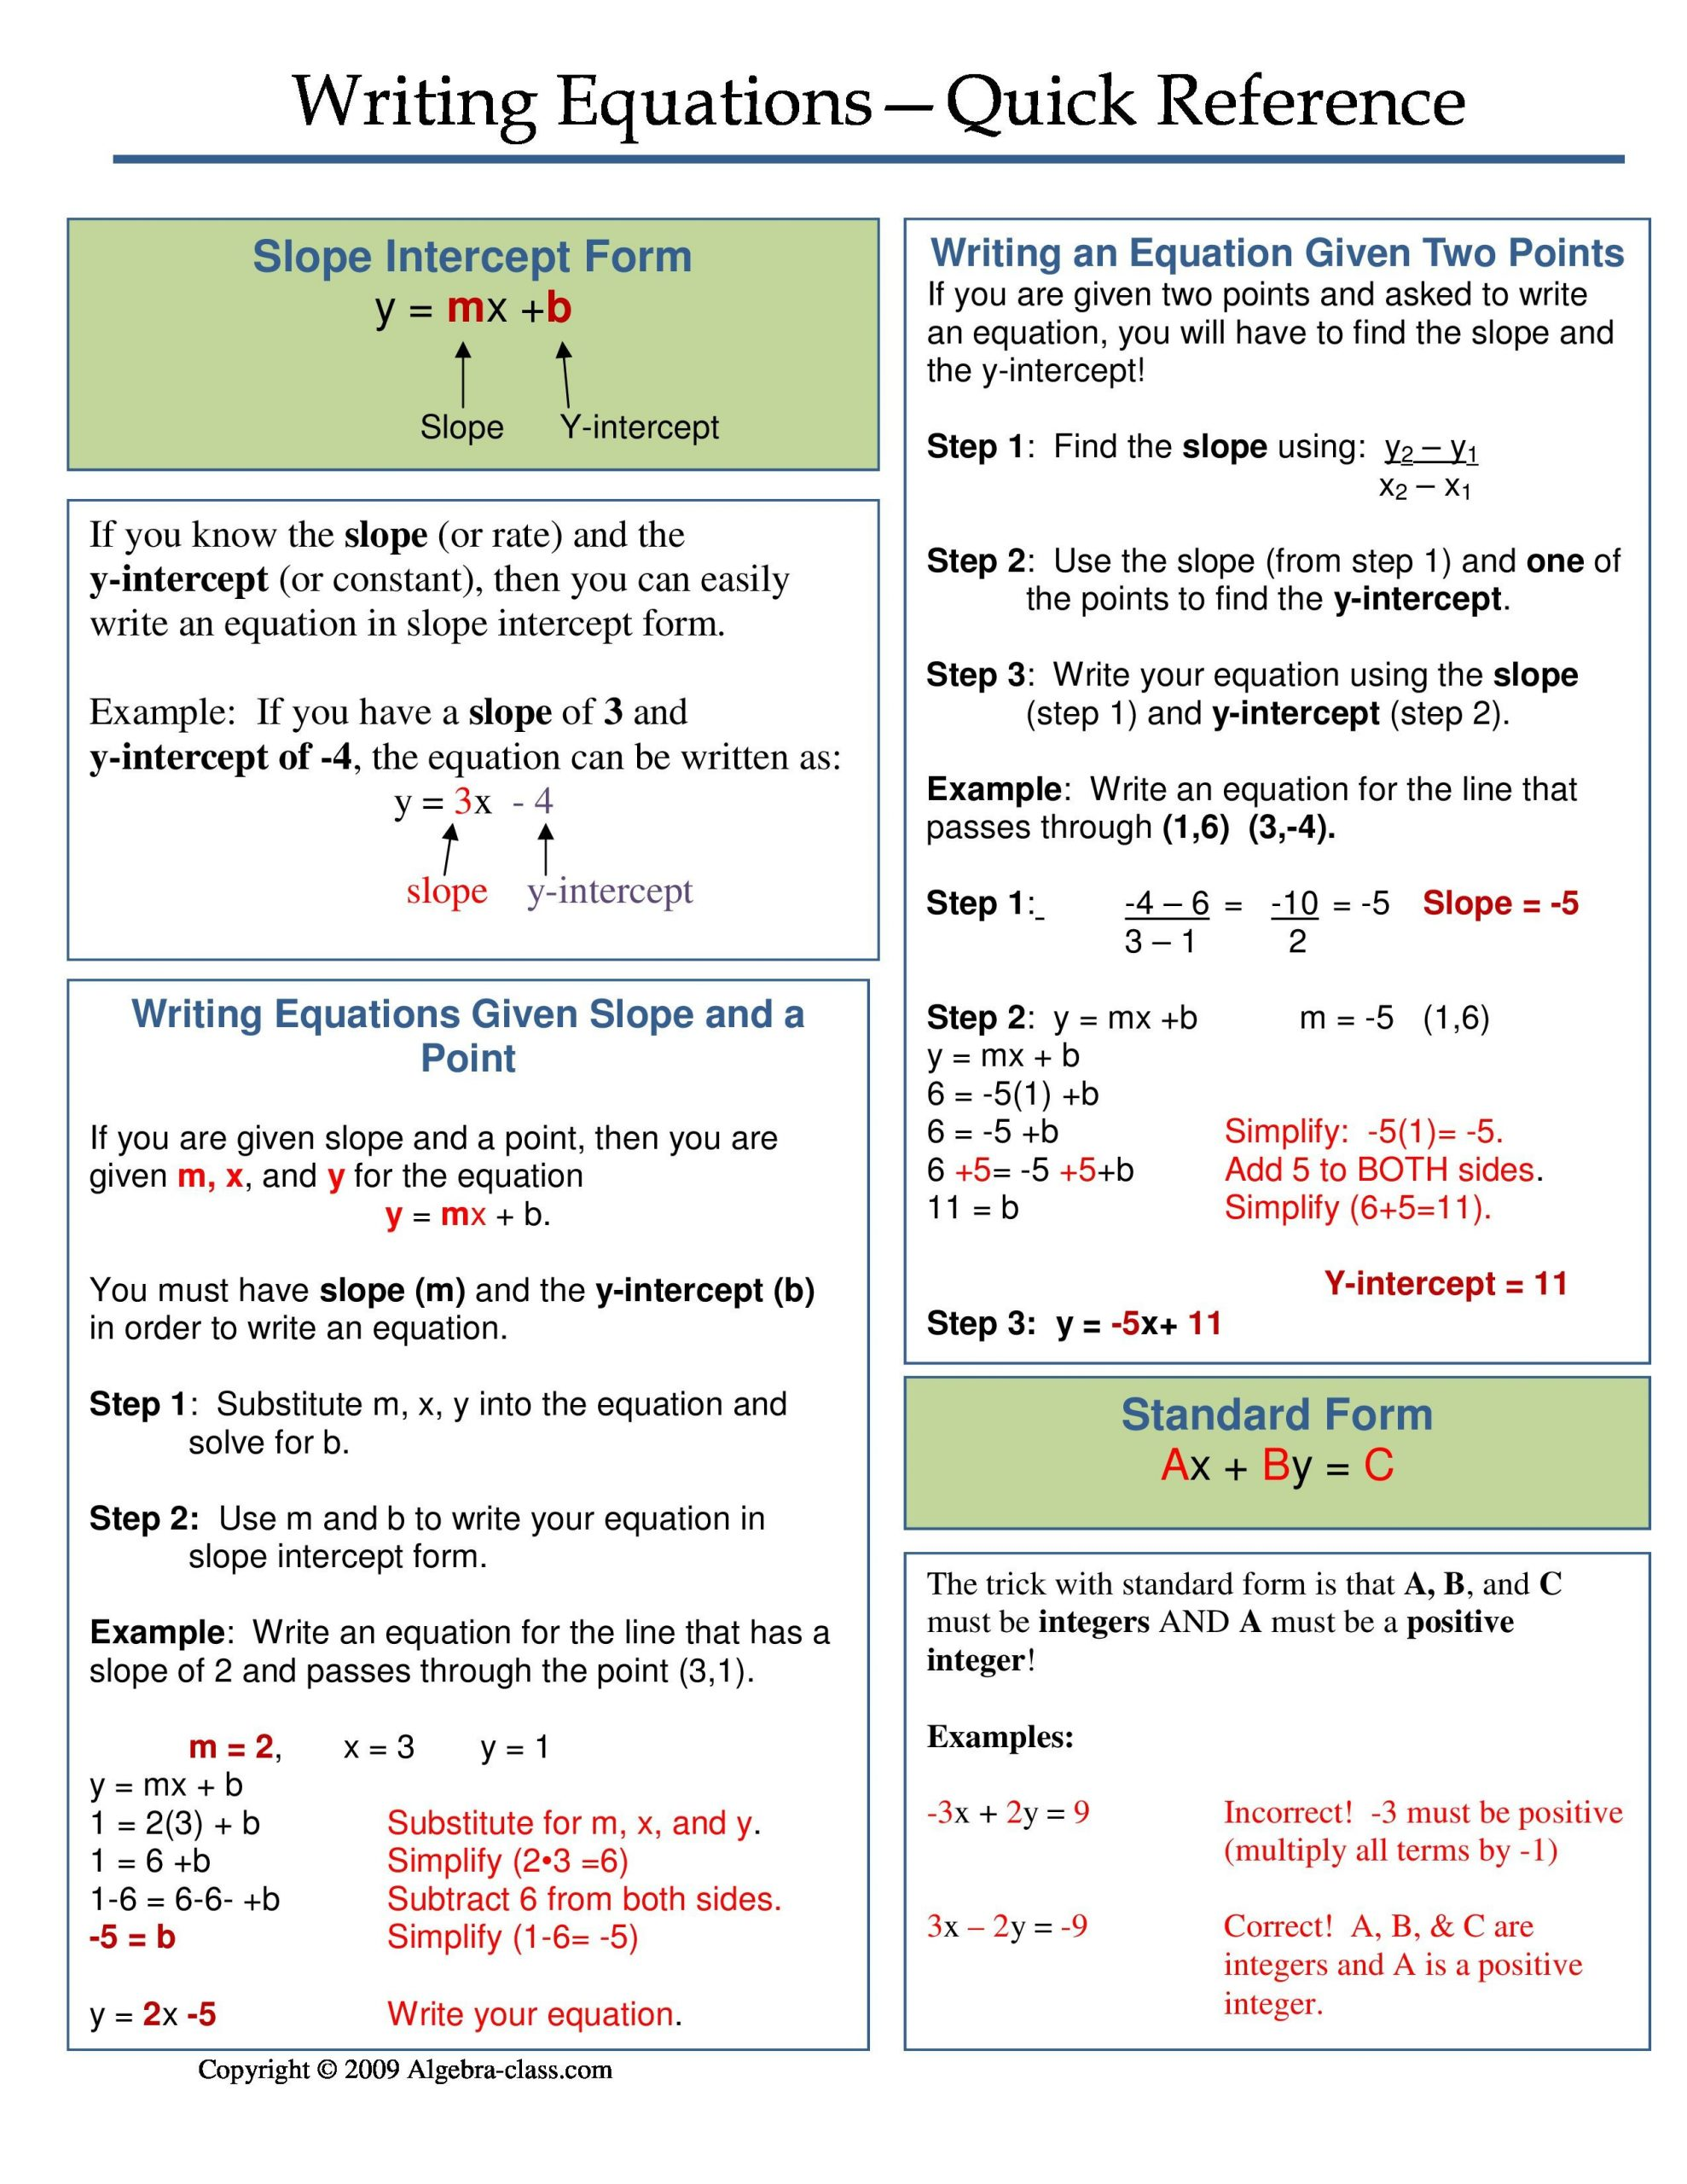 Writing Equations Of Lines Worksheets E Page Notes Worksheet for Writing Equations Unit